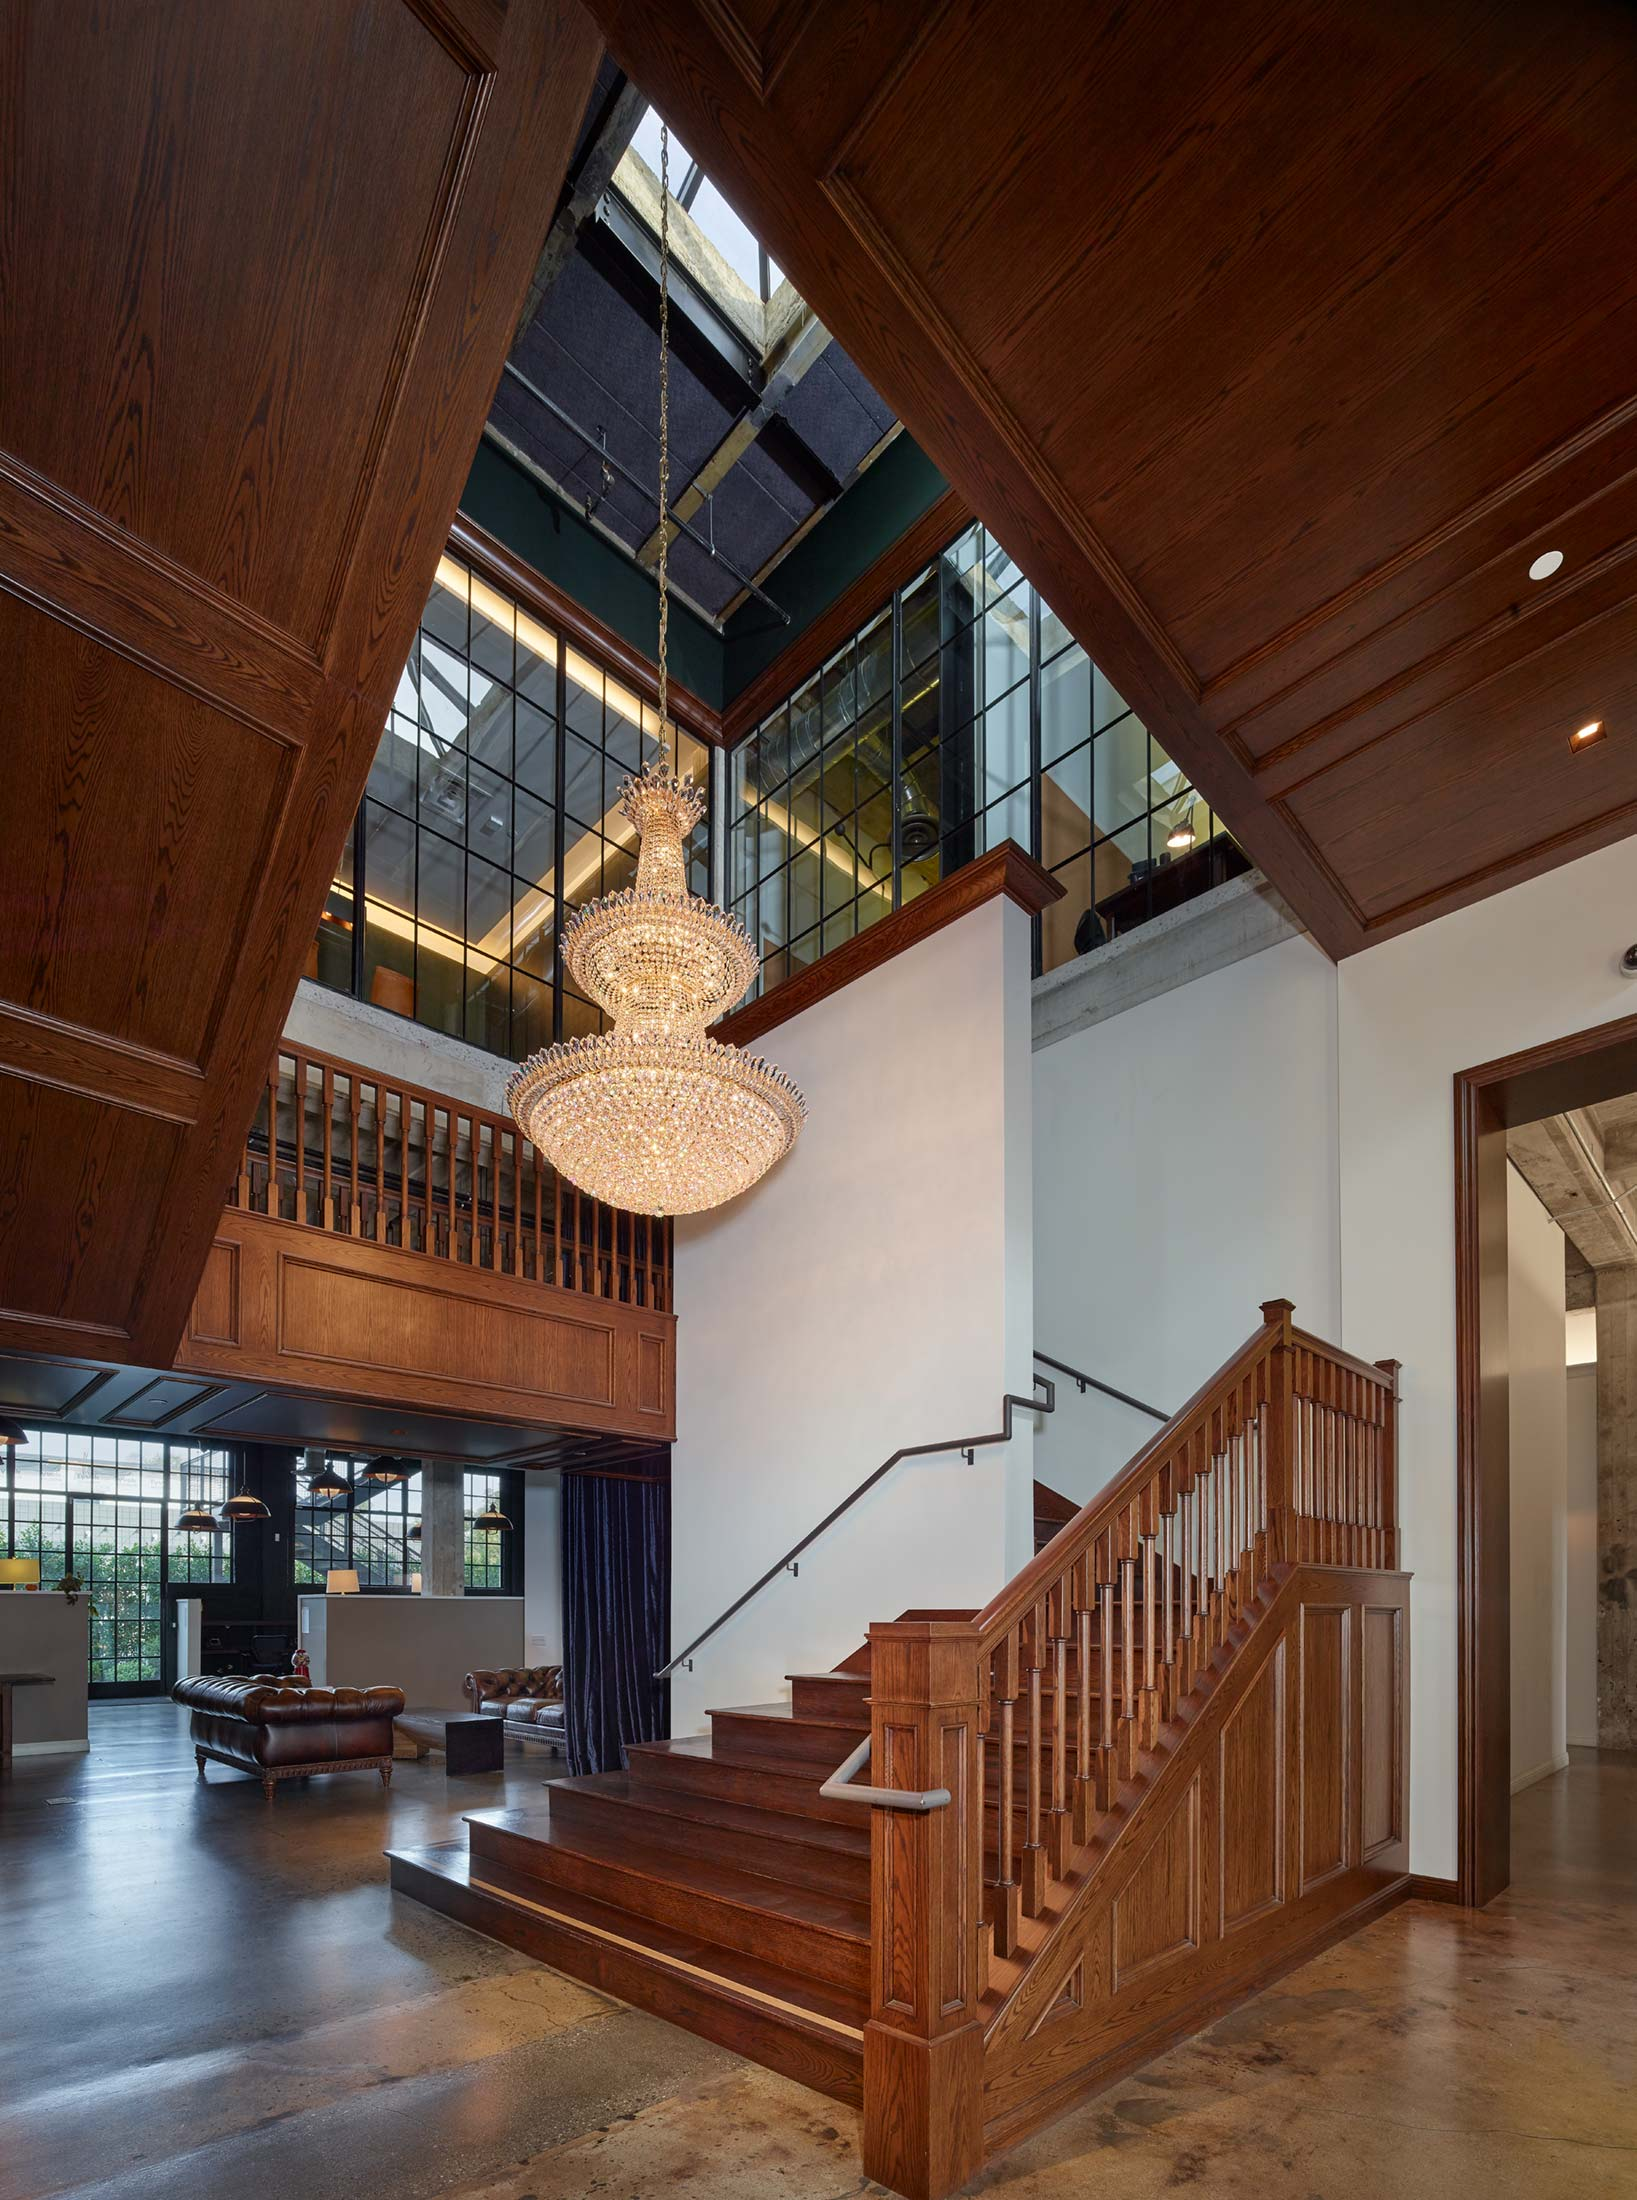 modern-architecture-commercial-interiors-workplace-office-adaptive-reuse-california-shubindonaldson-smuggler-12